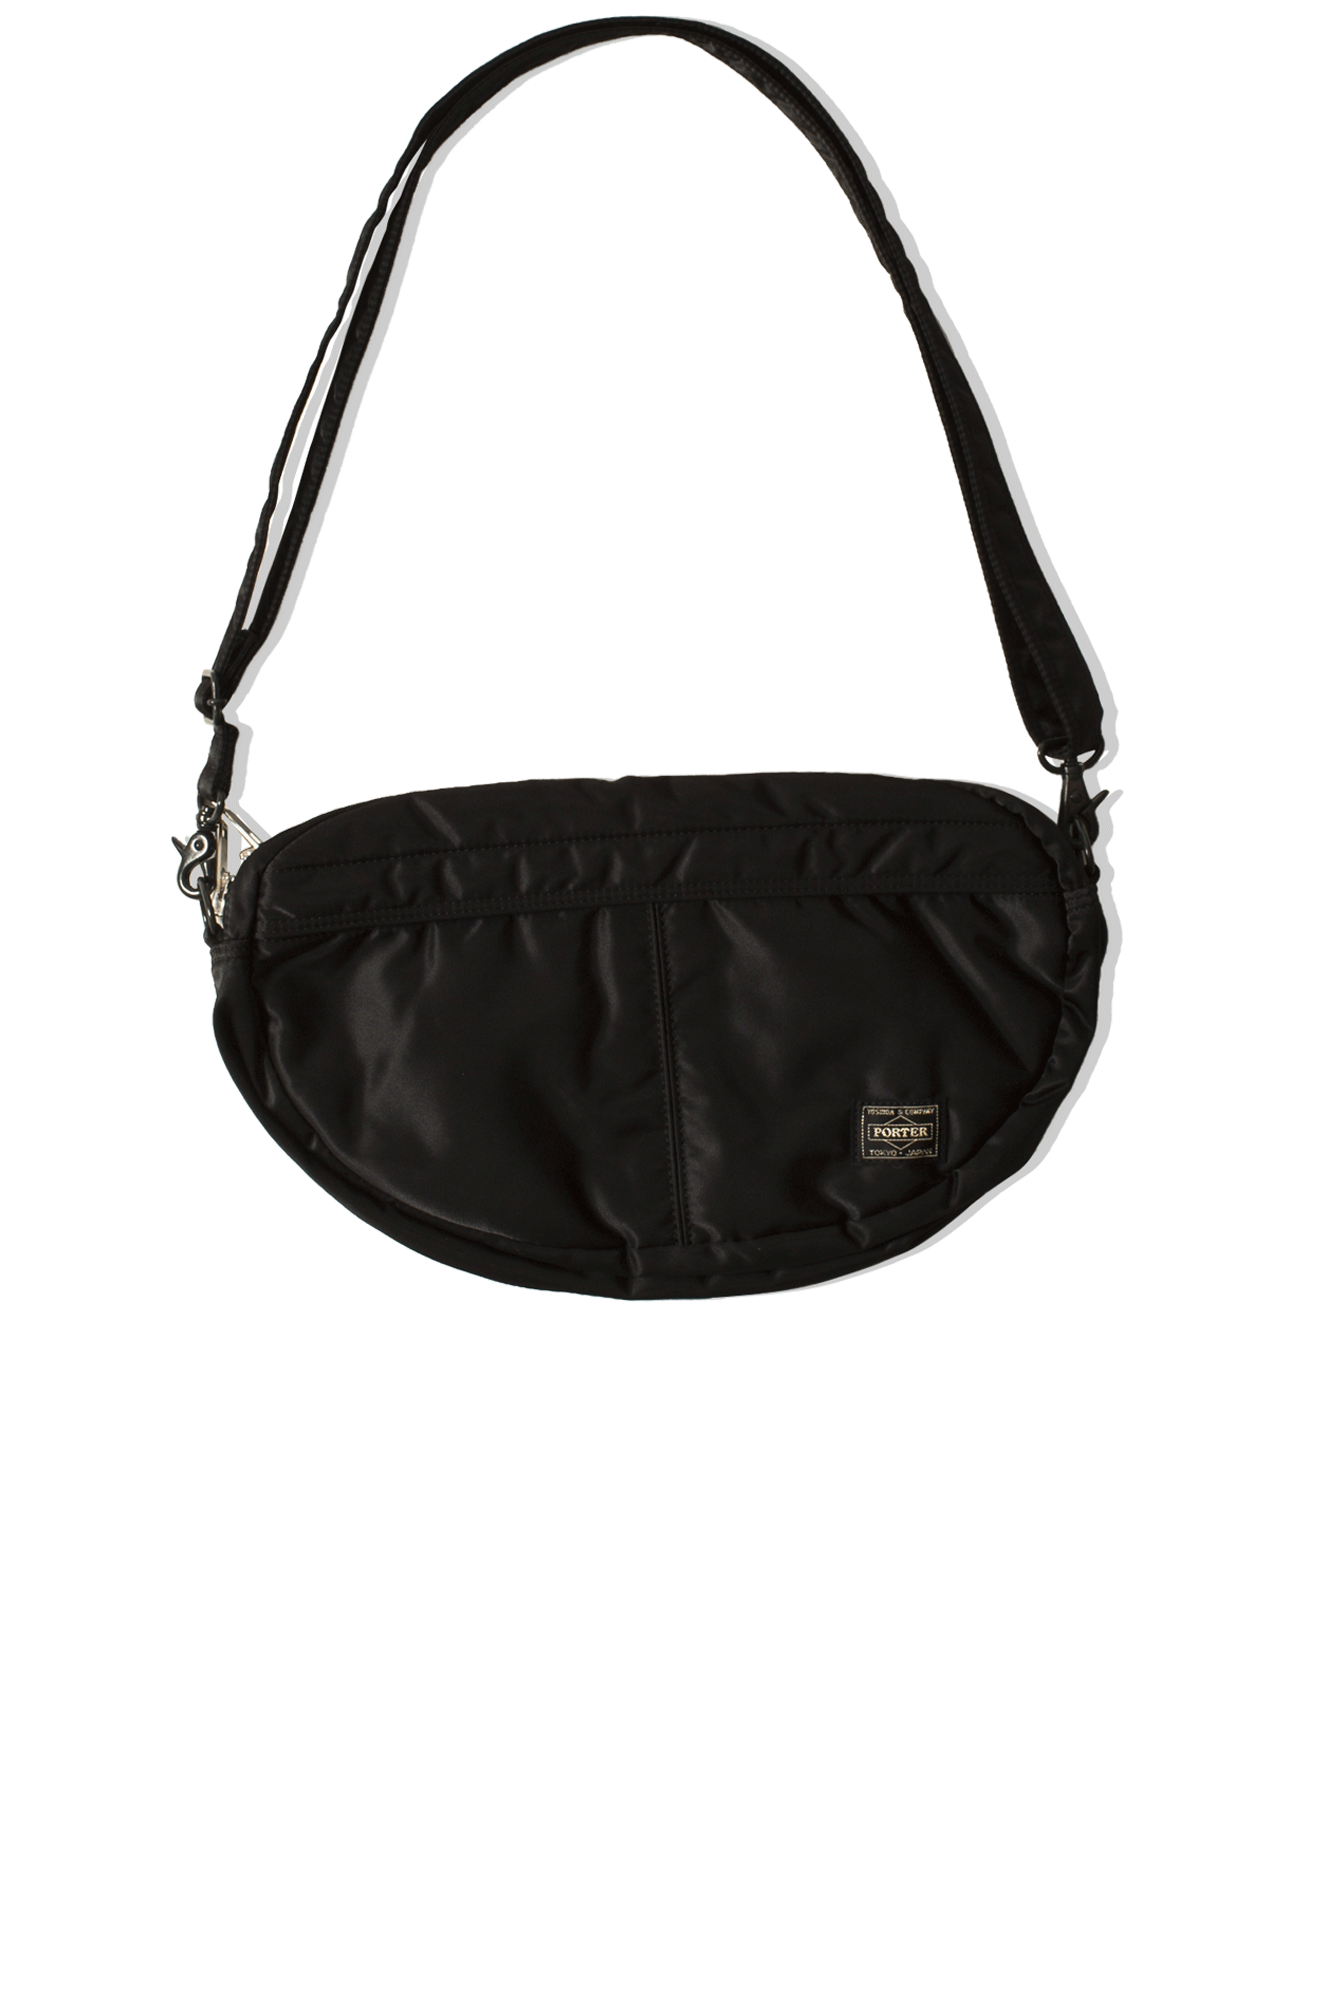 Tanker Shoulder Bag Black